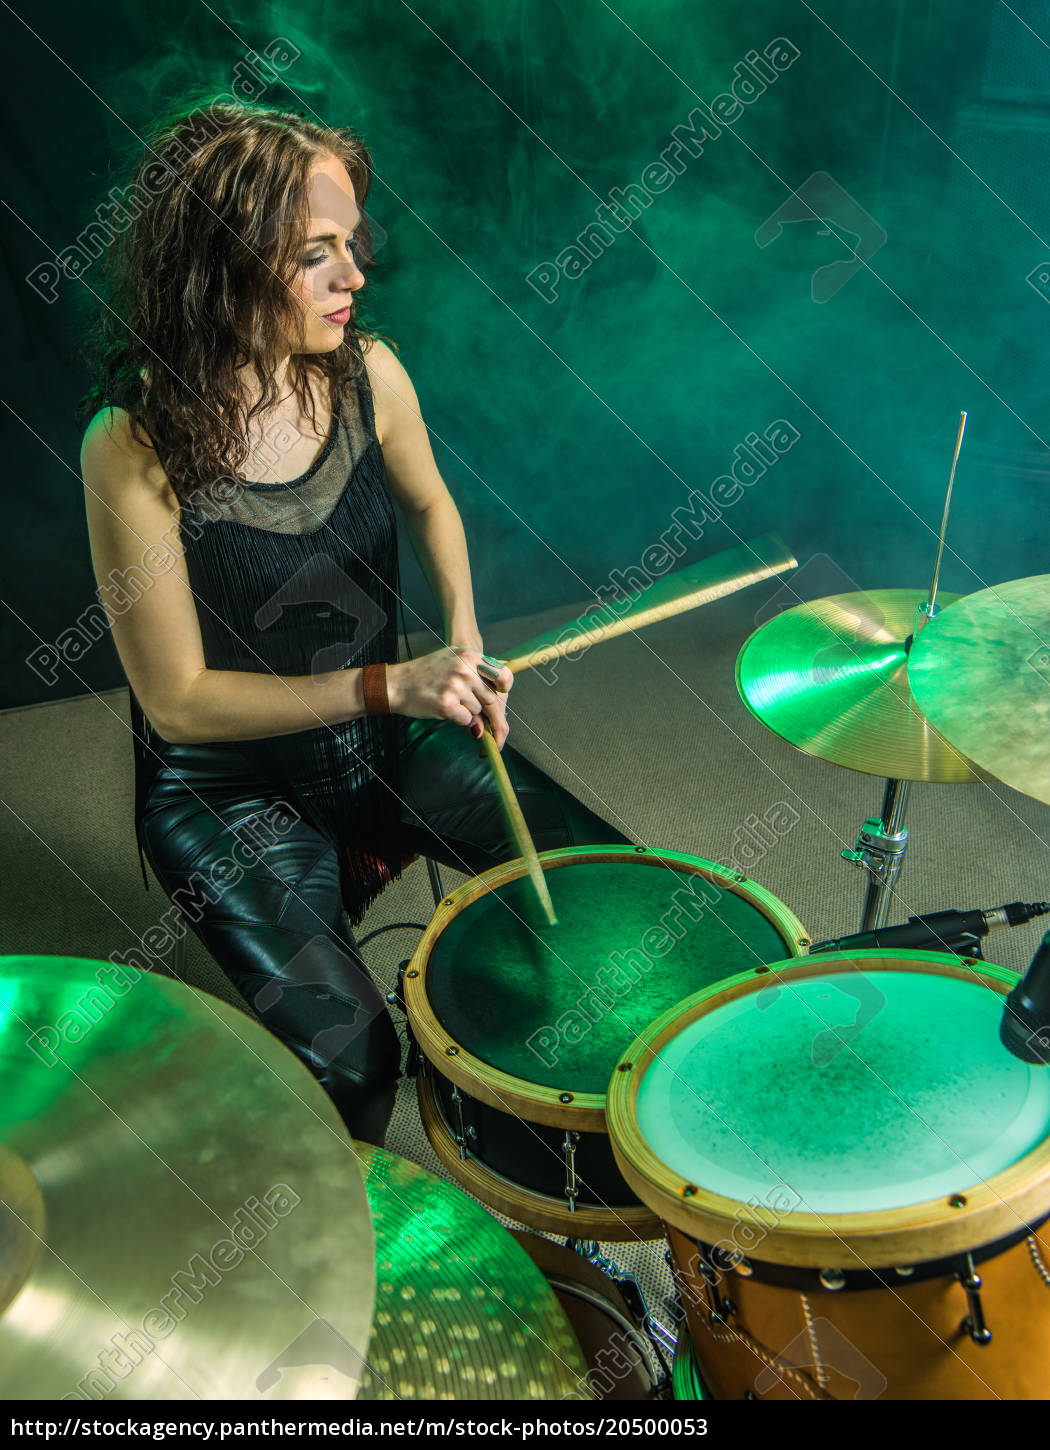 woman, playing, drums, onstage - 20500053